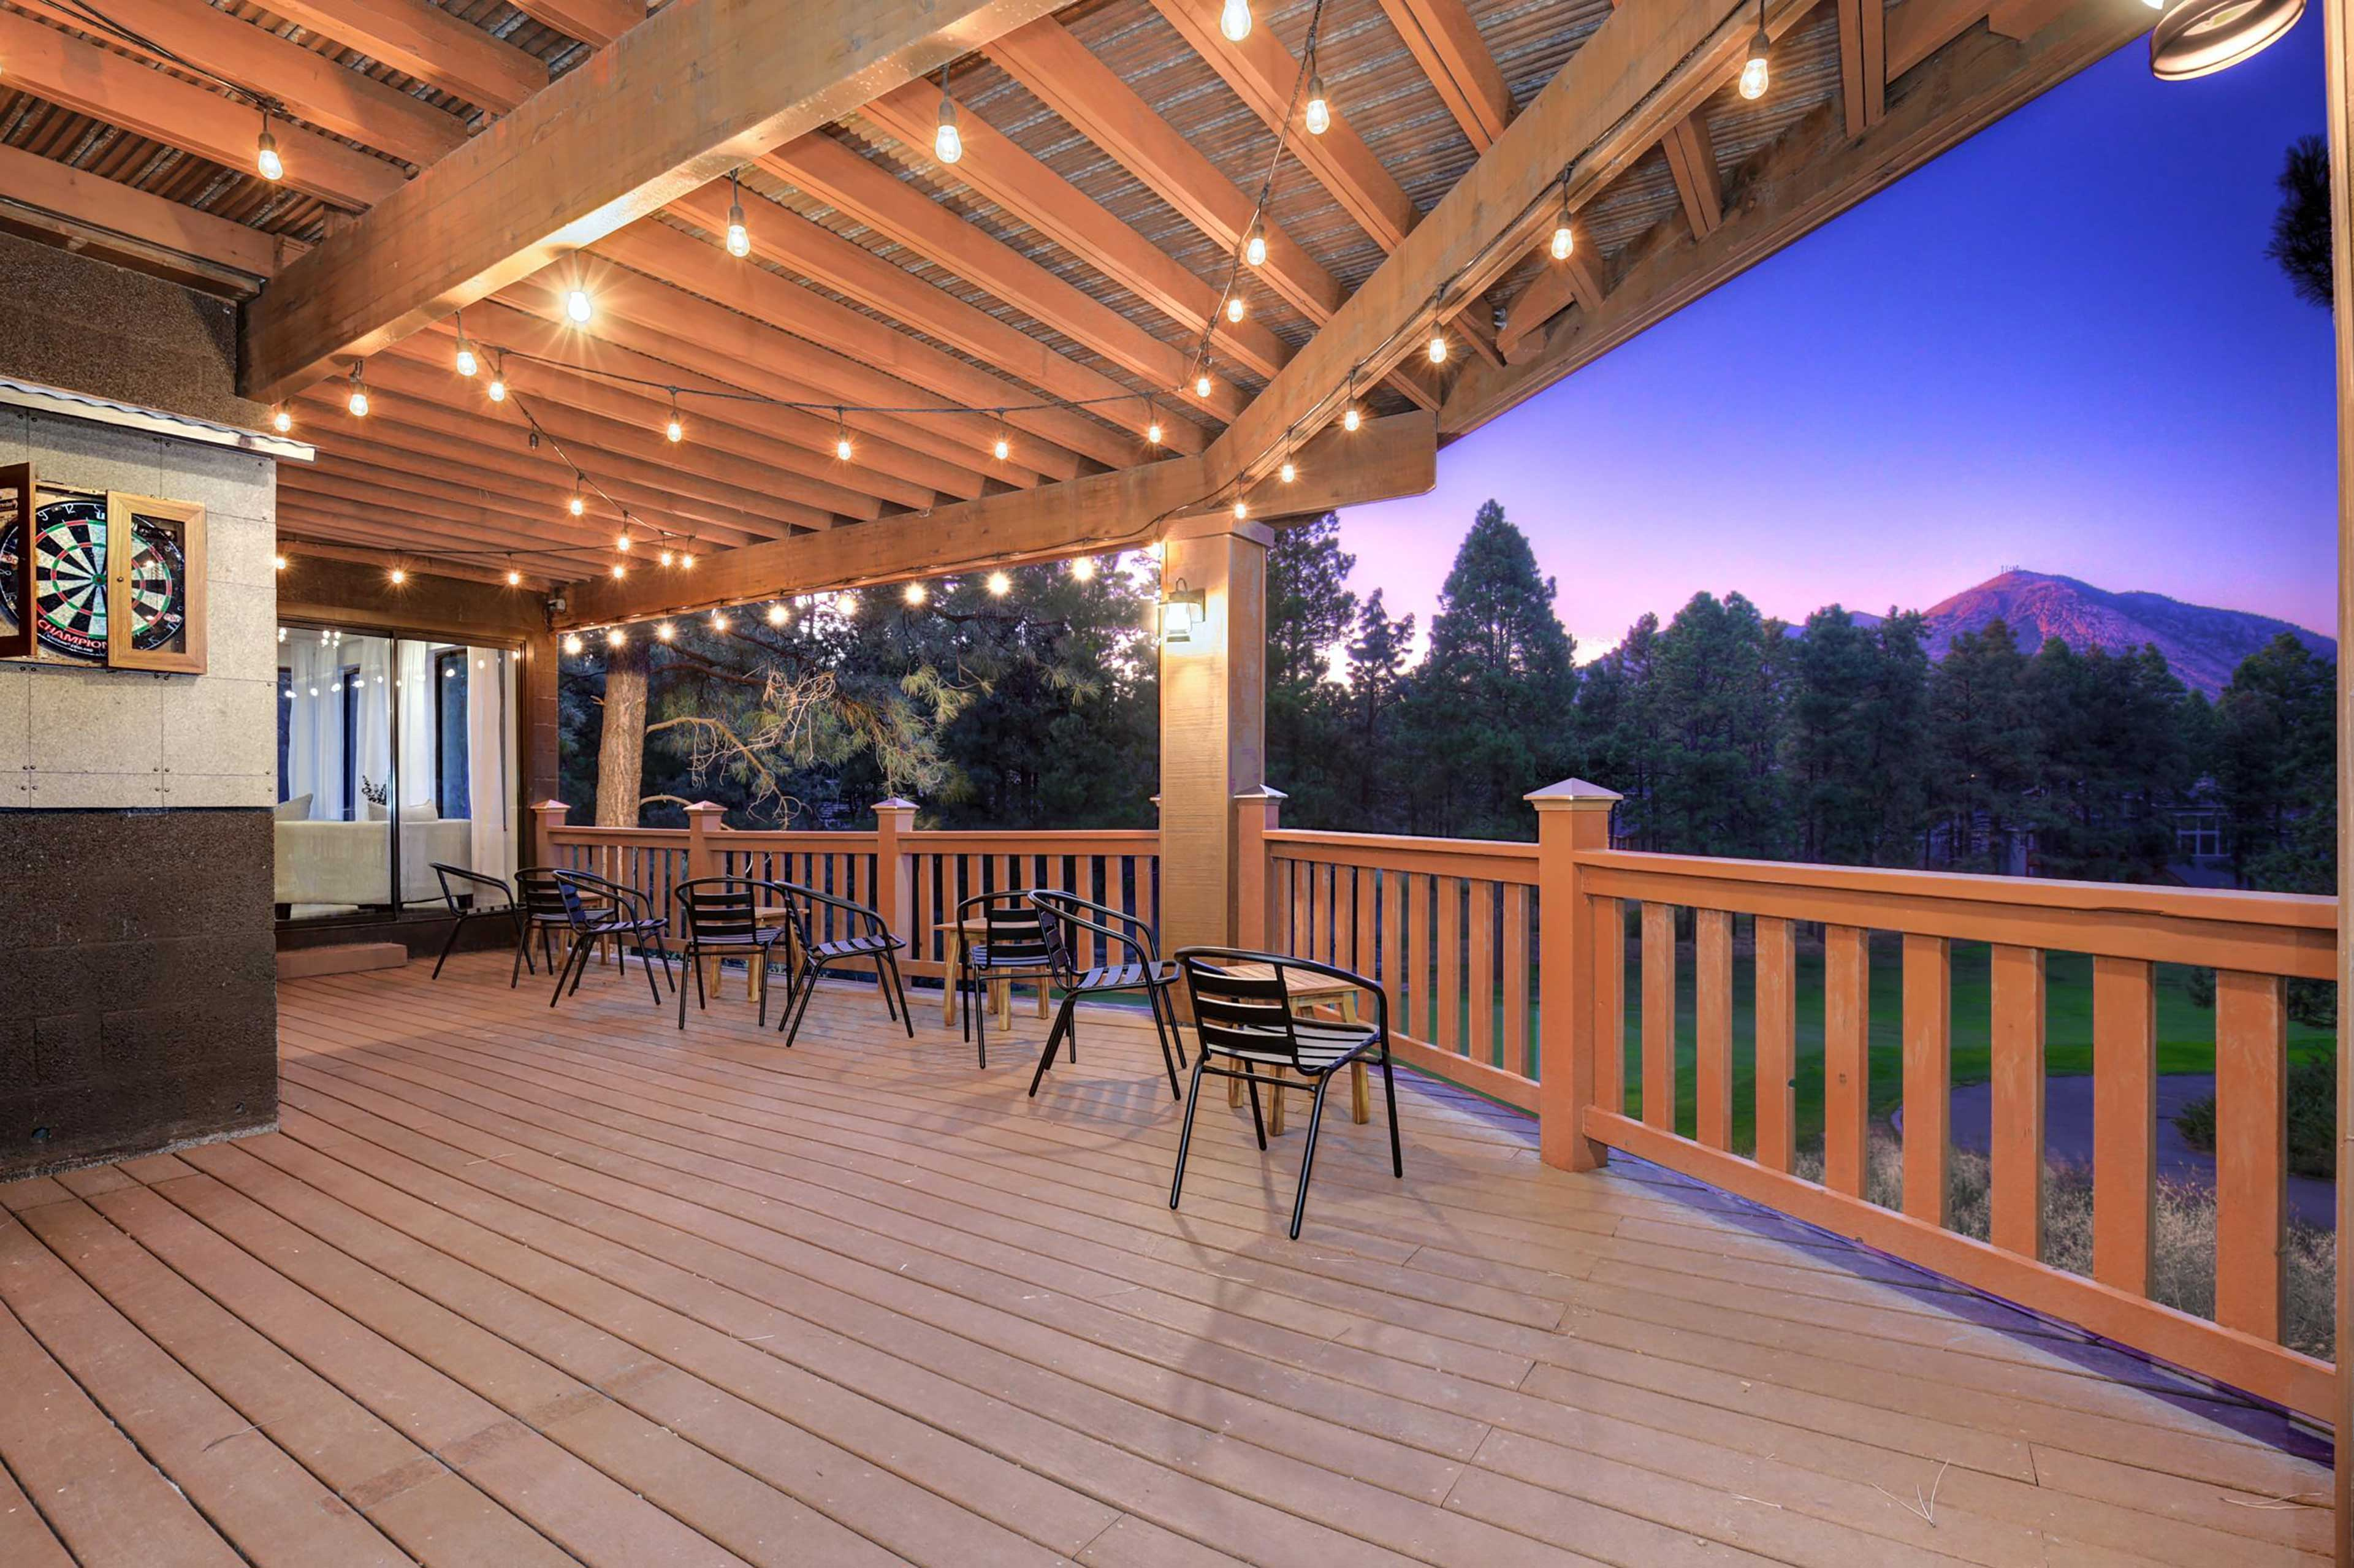 The lower-level deck has fantastic views of the golf course.